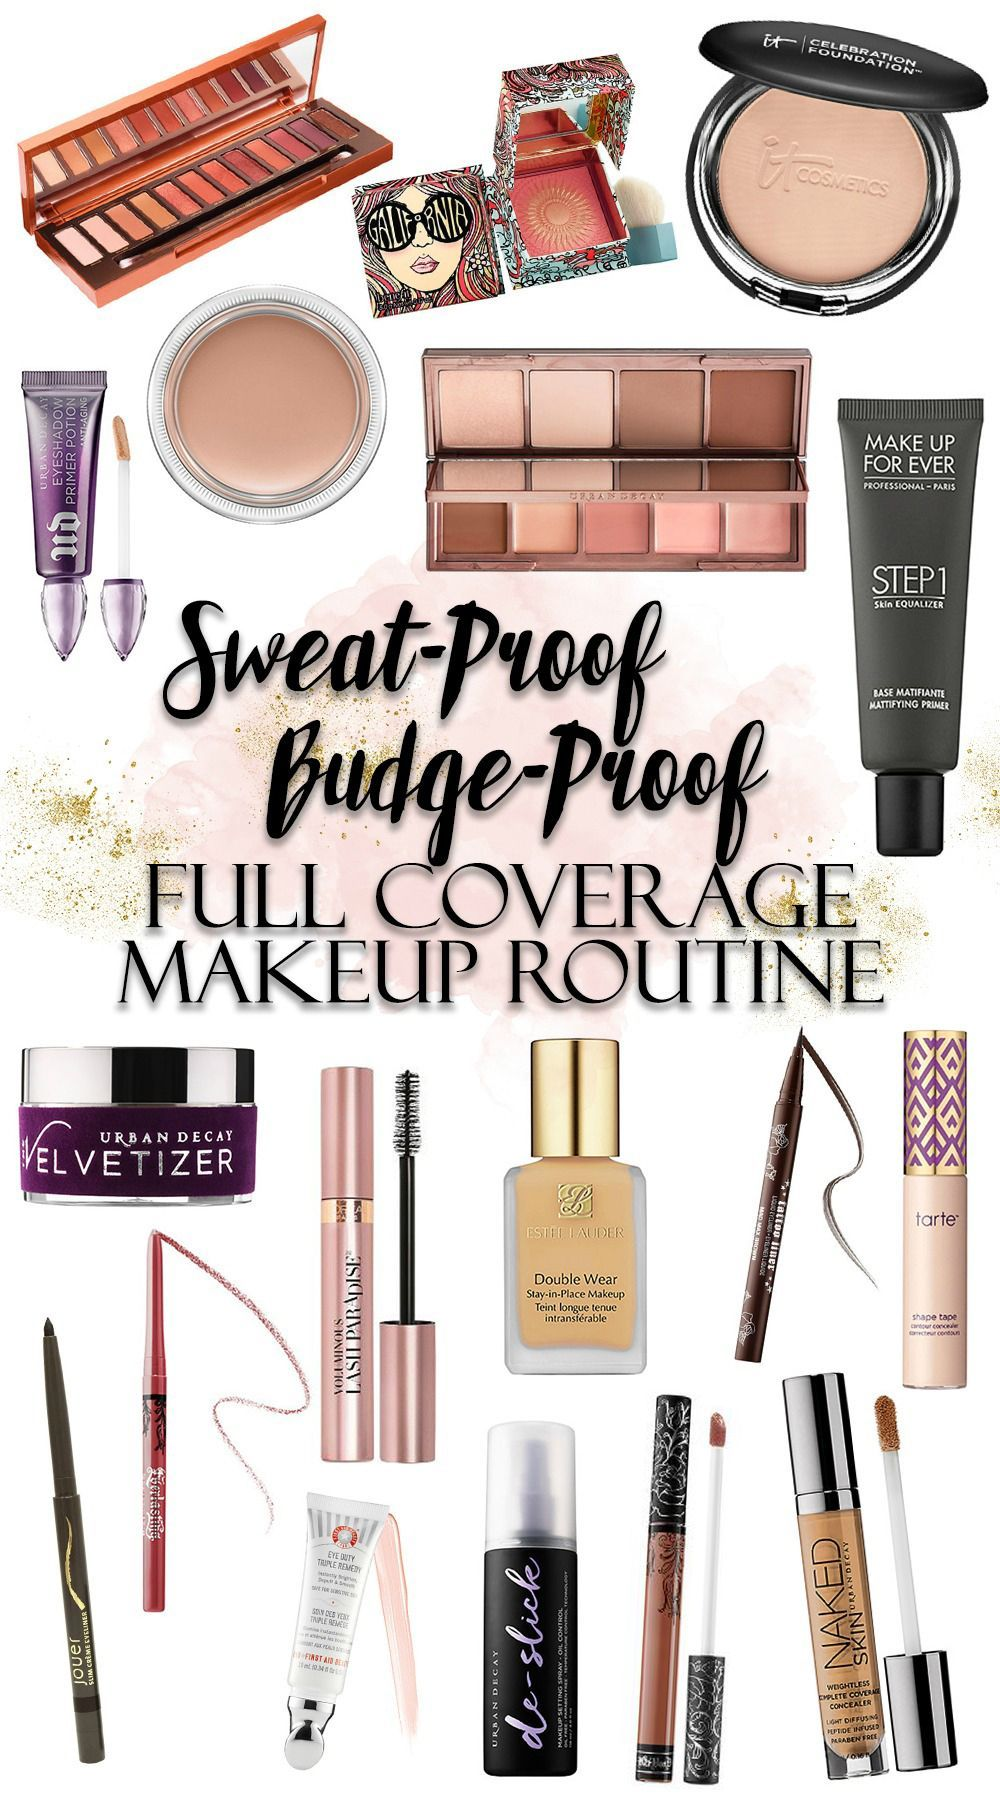 How To Sweat Proof Your Full Coverage Makeup Routine For Summer In 2020 Sweat Proof Makeup Full Coverage Makeup Makeup Routine